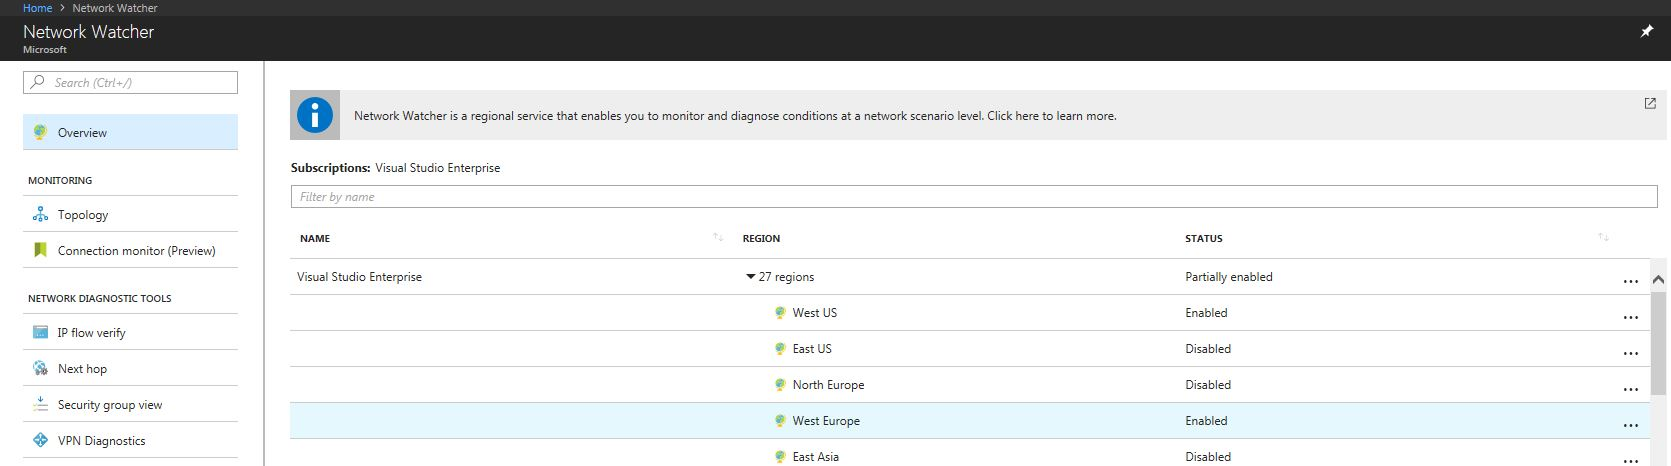 Enable Network Watchers in your desired location